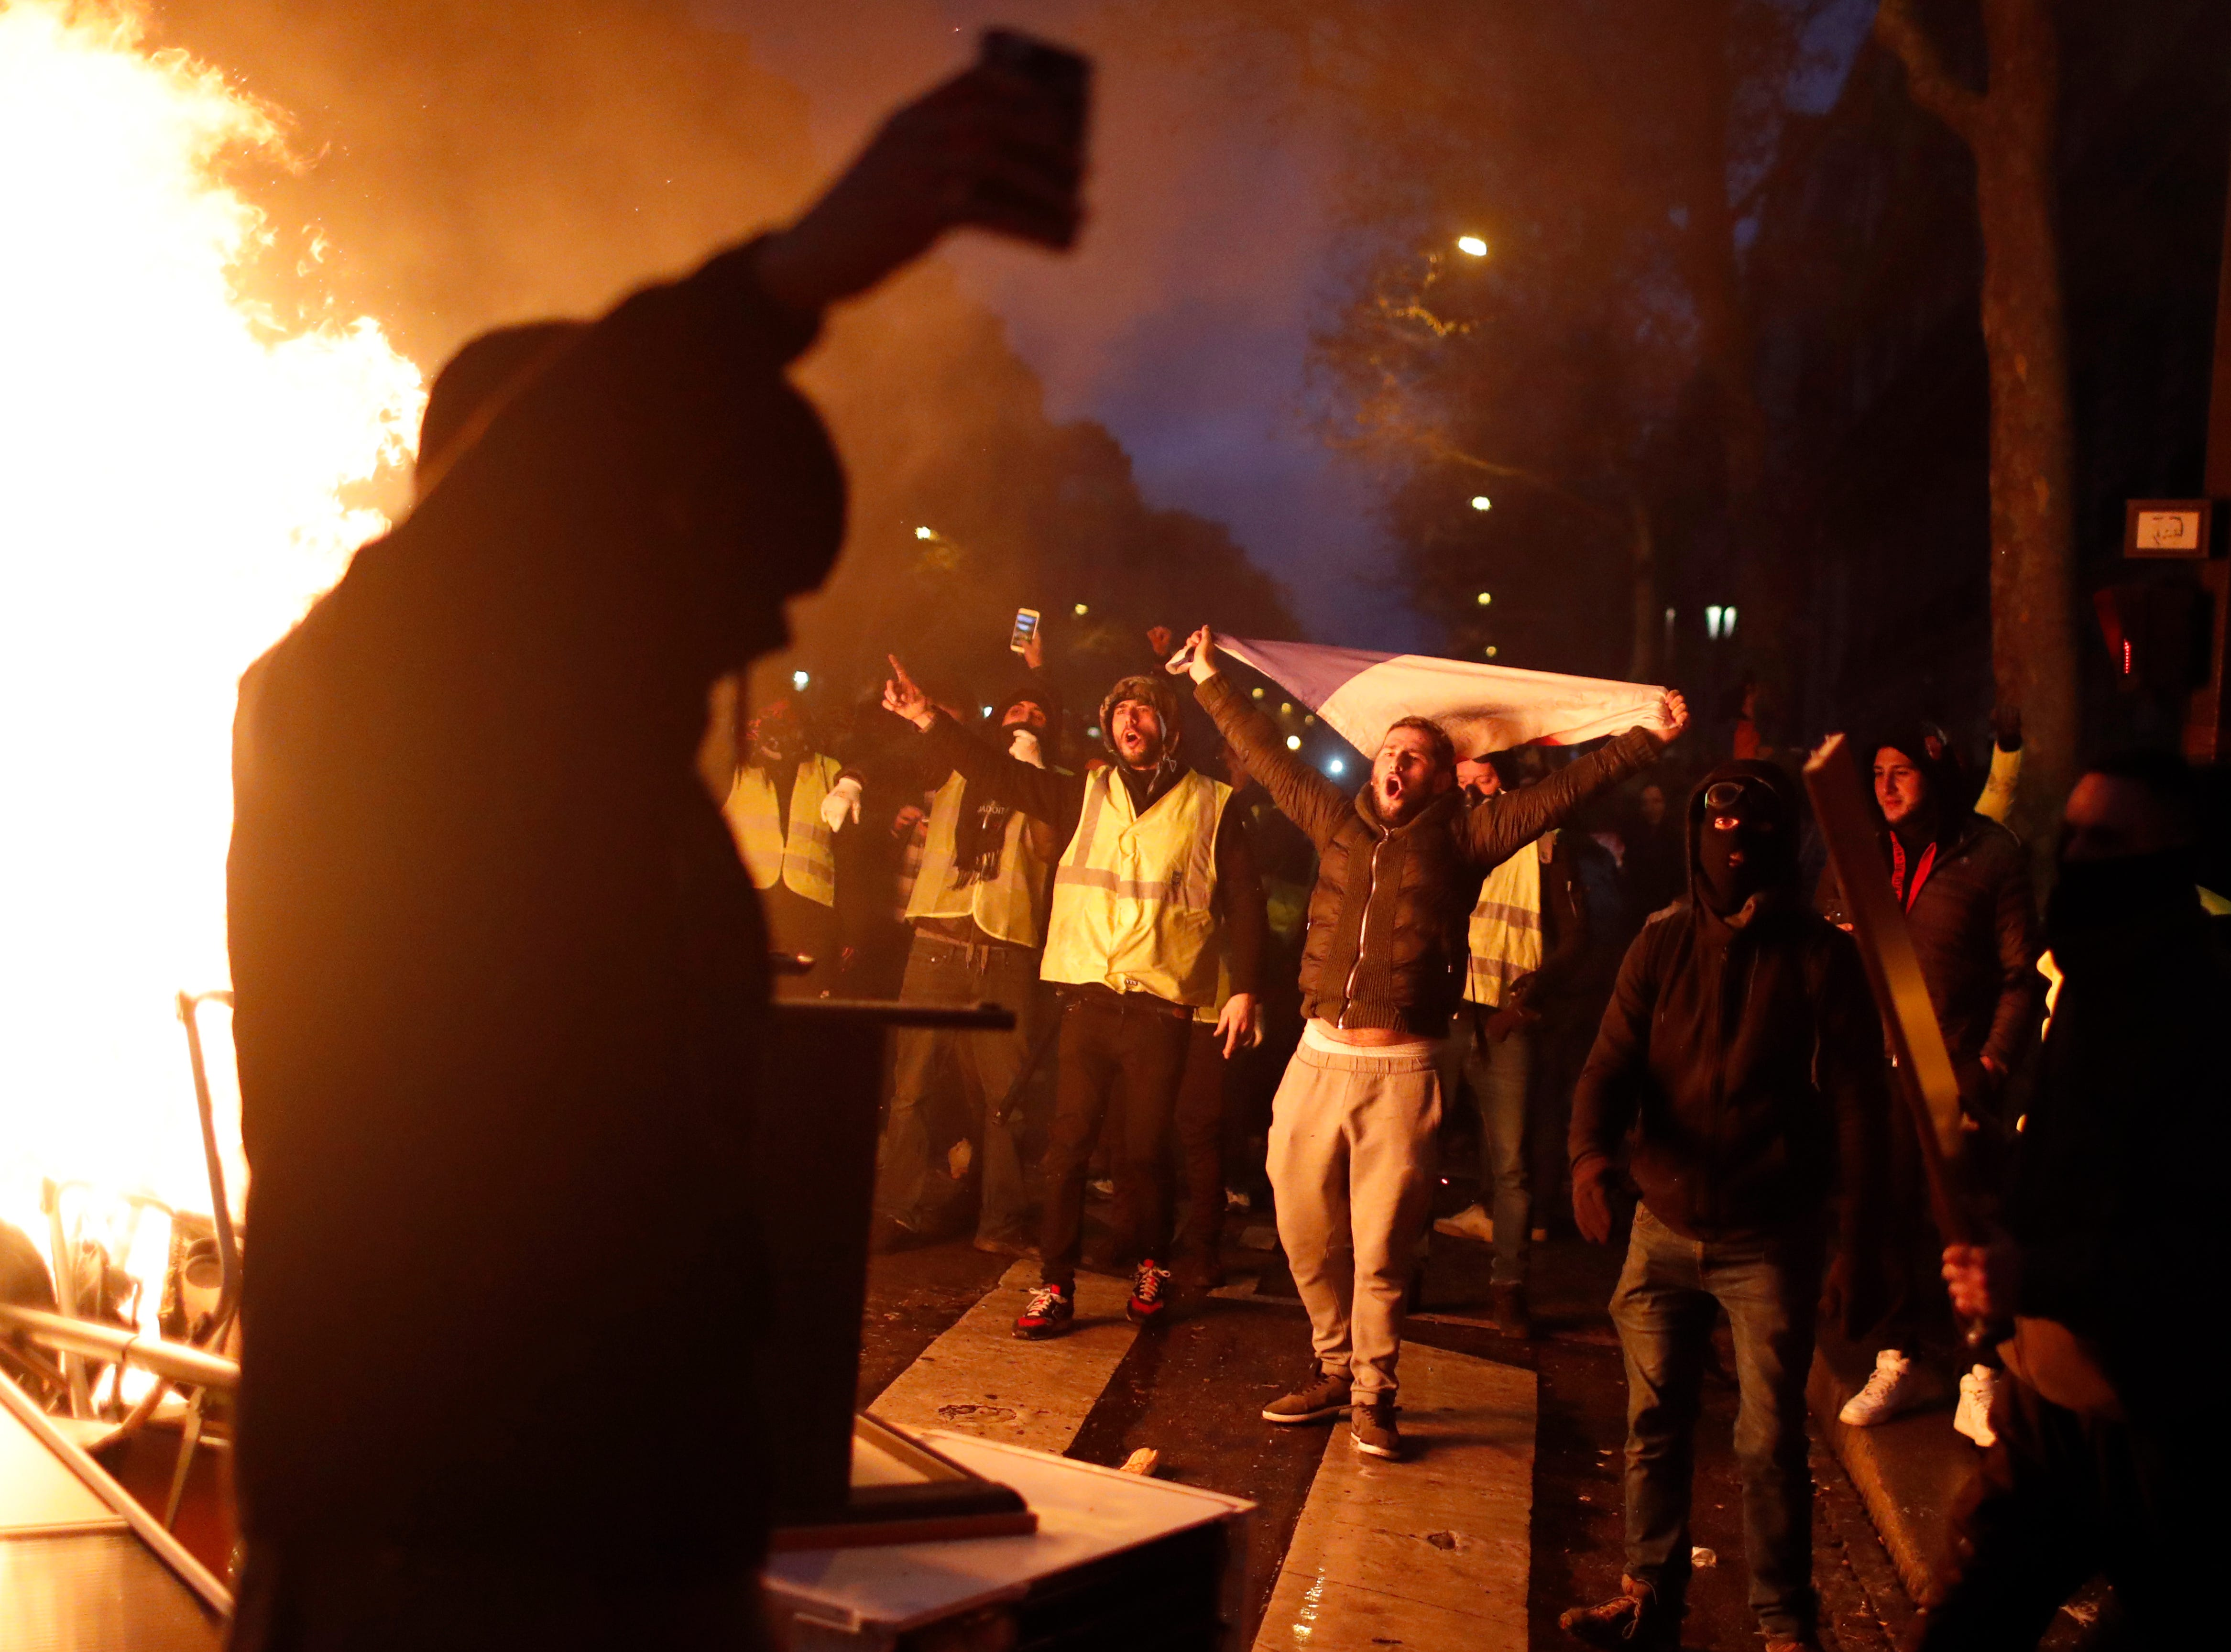 Protests against fuel taxes, rising cost of living hit French cities